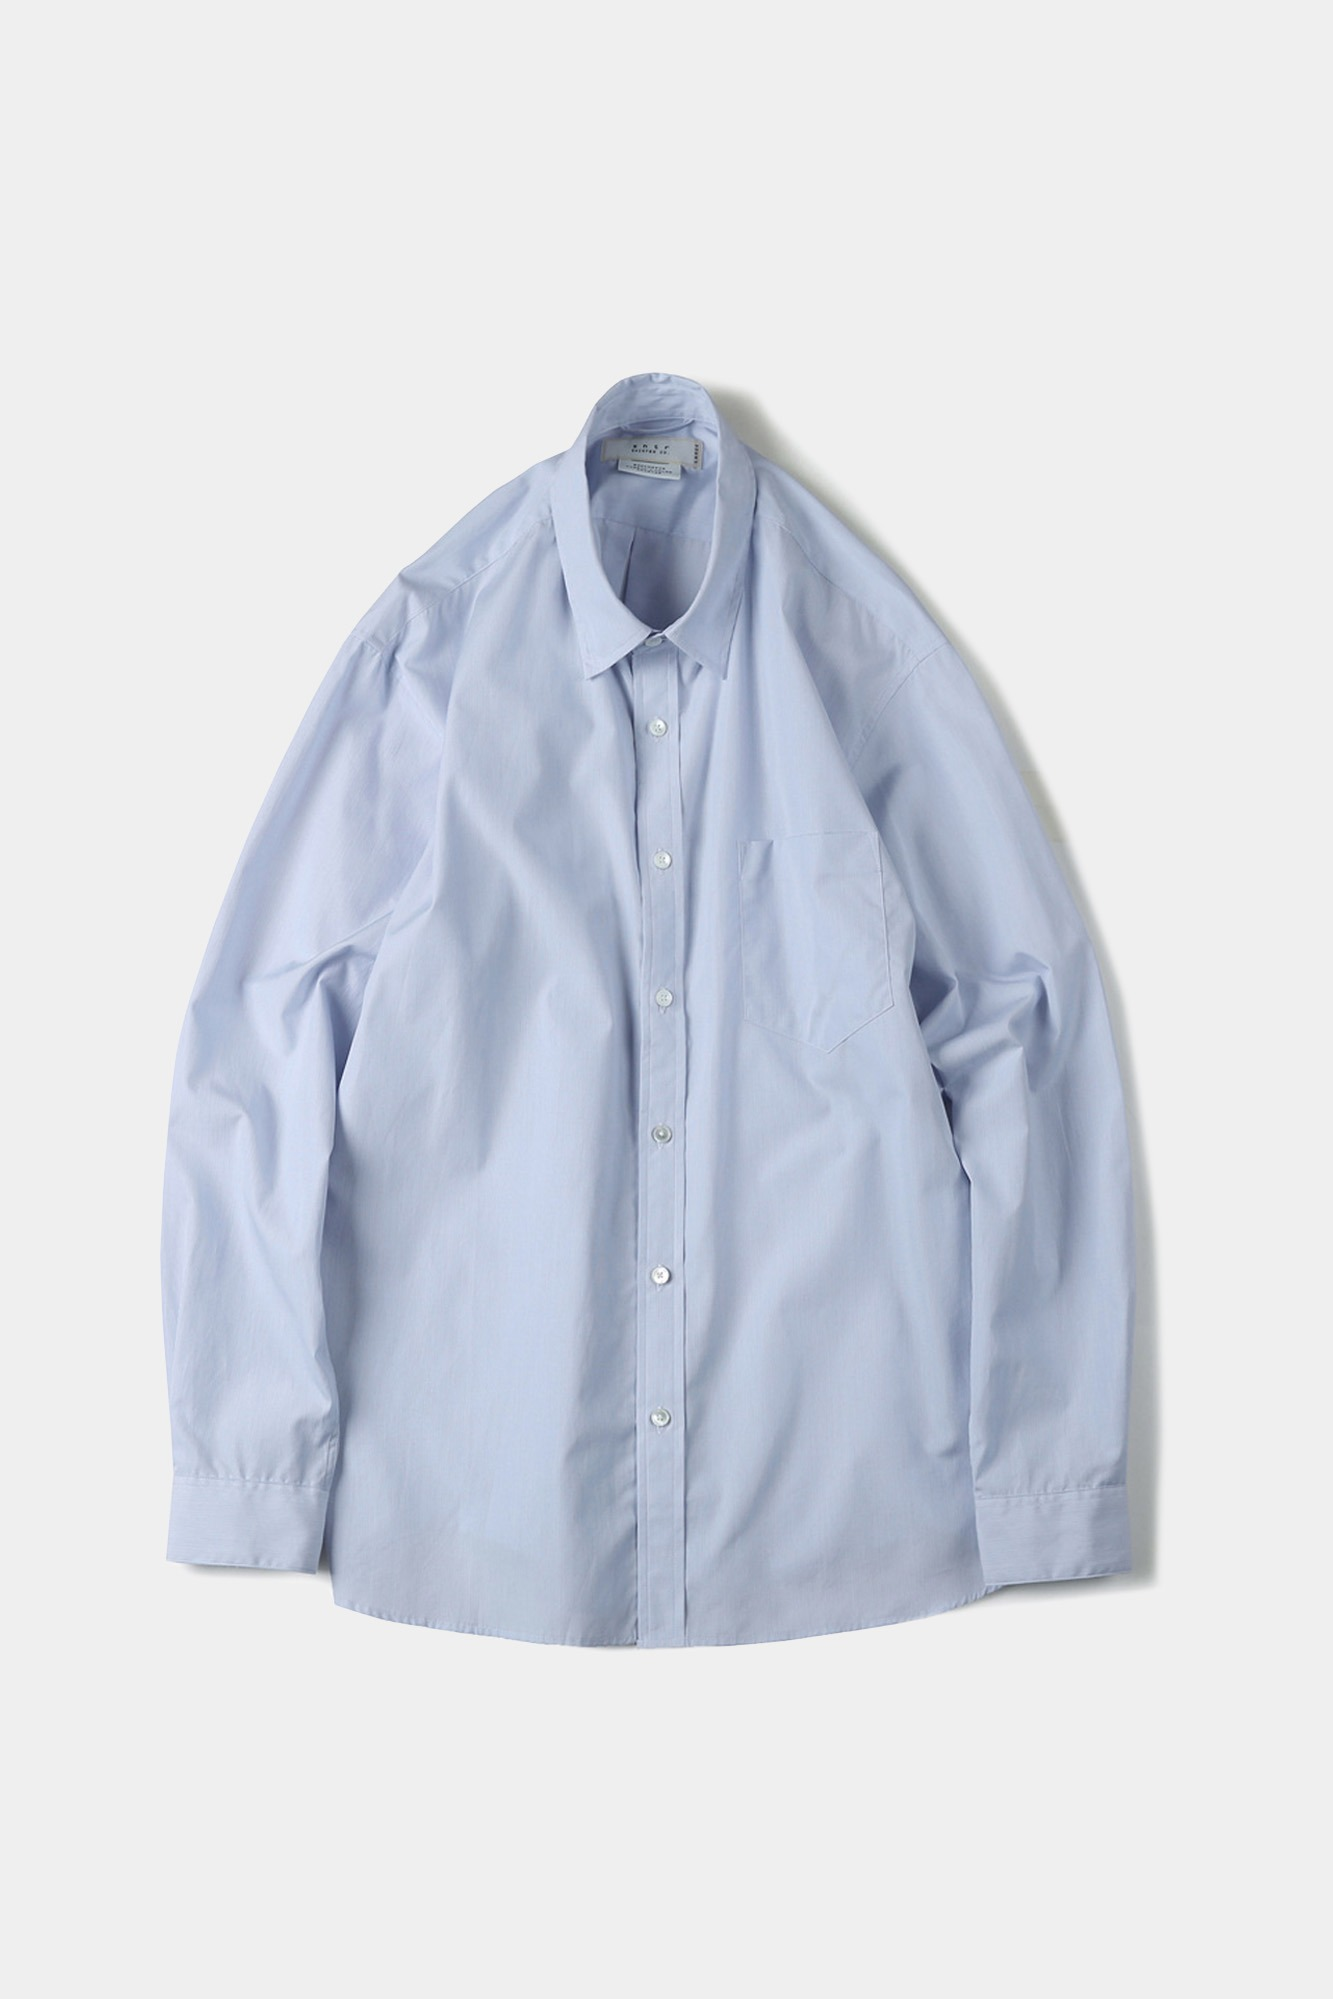 "SHIRTER High Density Blue Stripe Standard Shirt_original fabric ""White"""